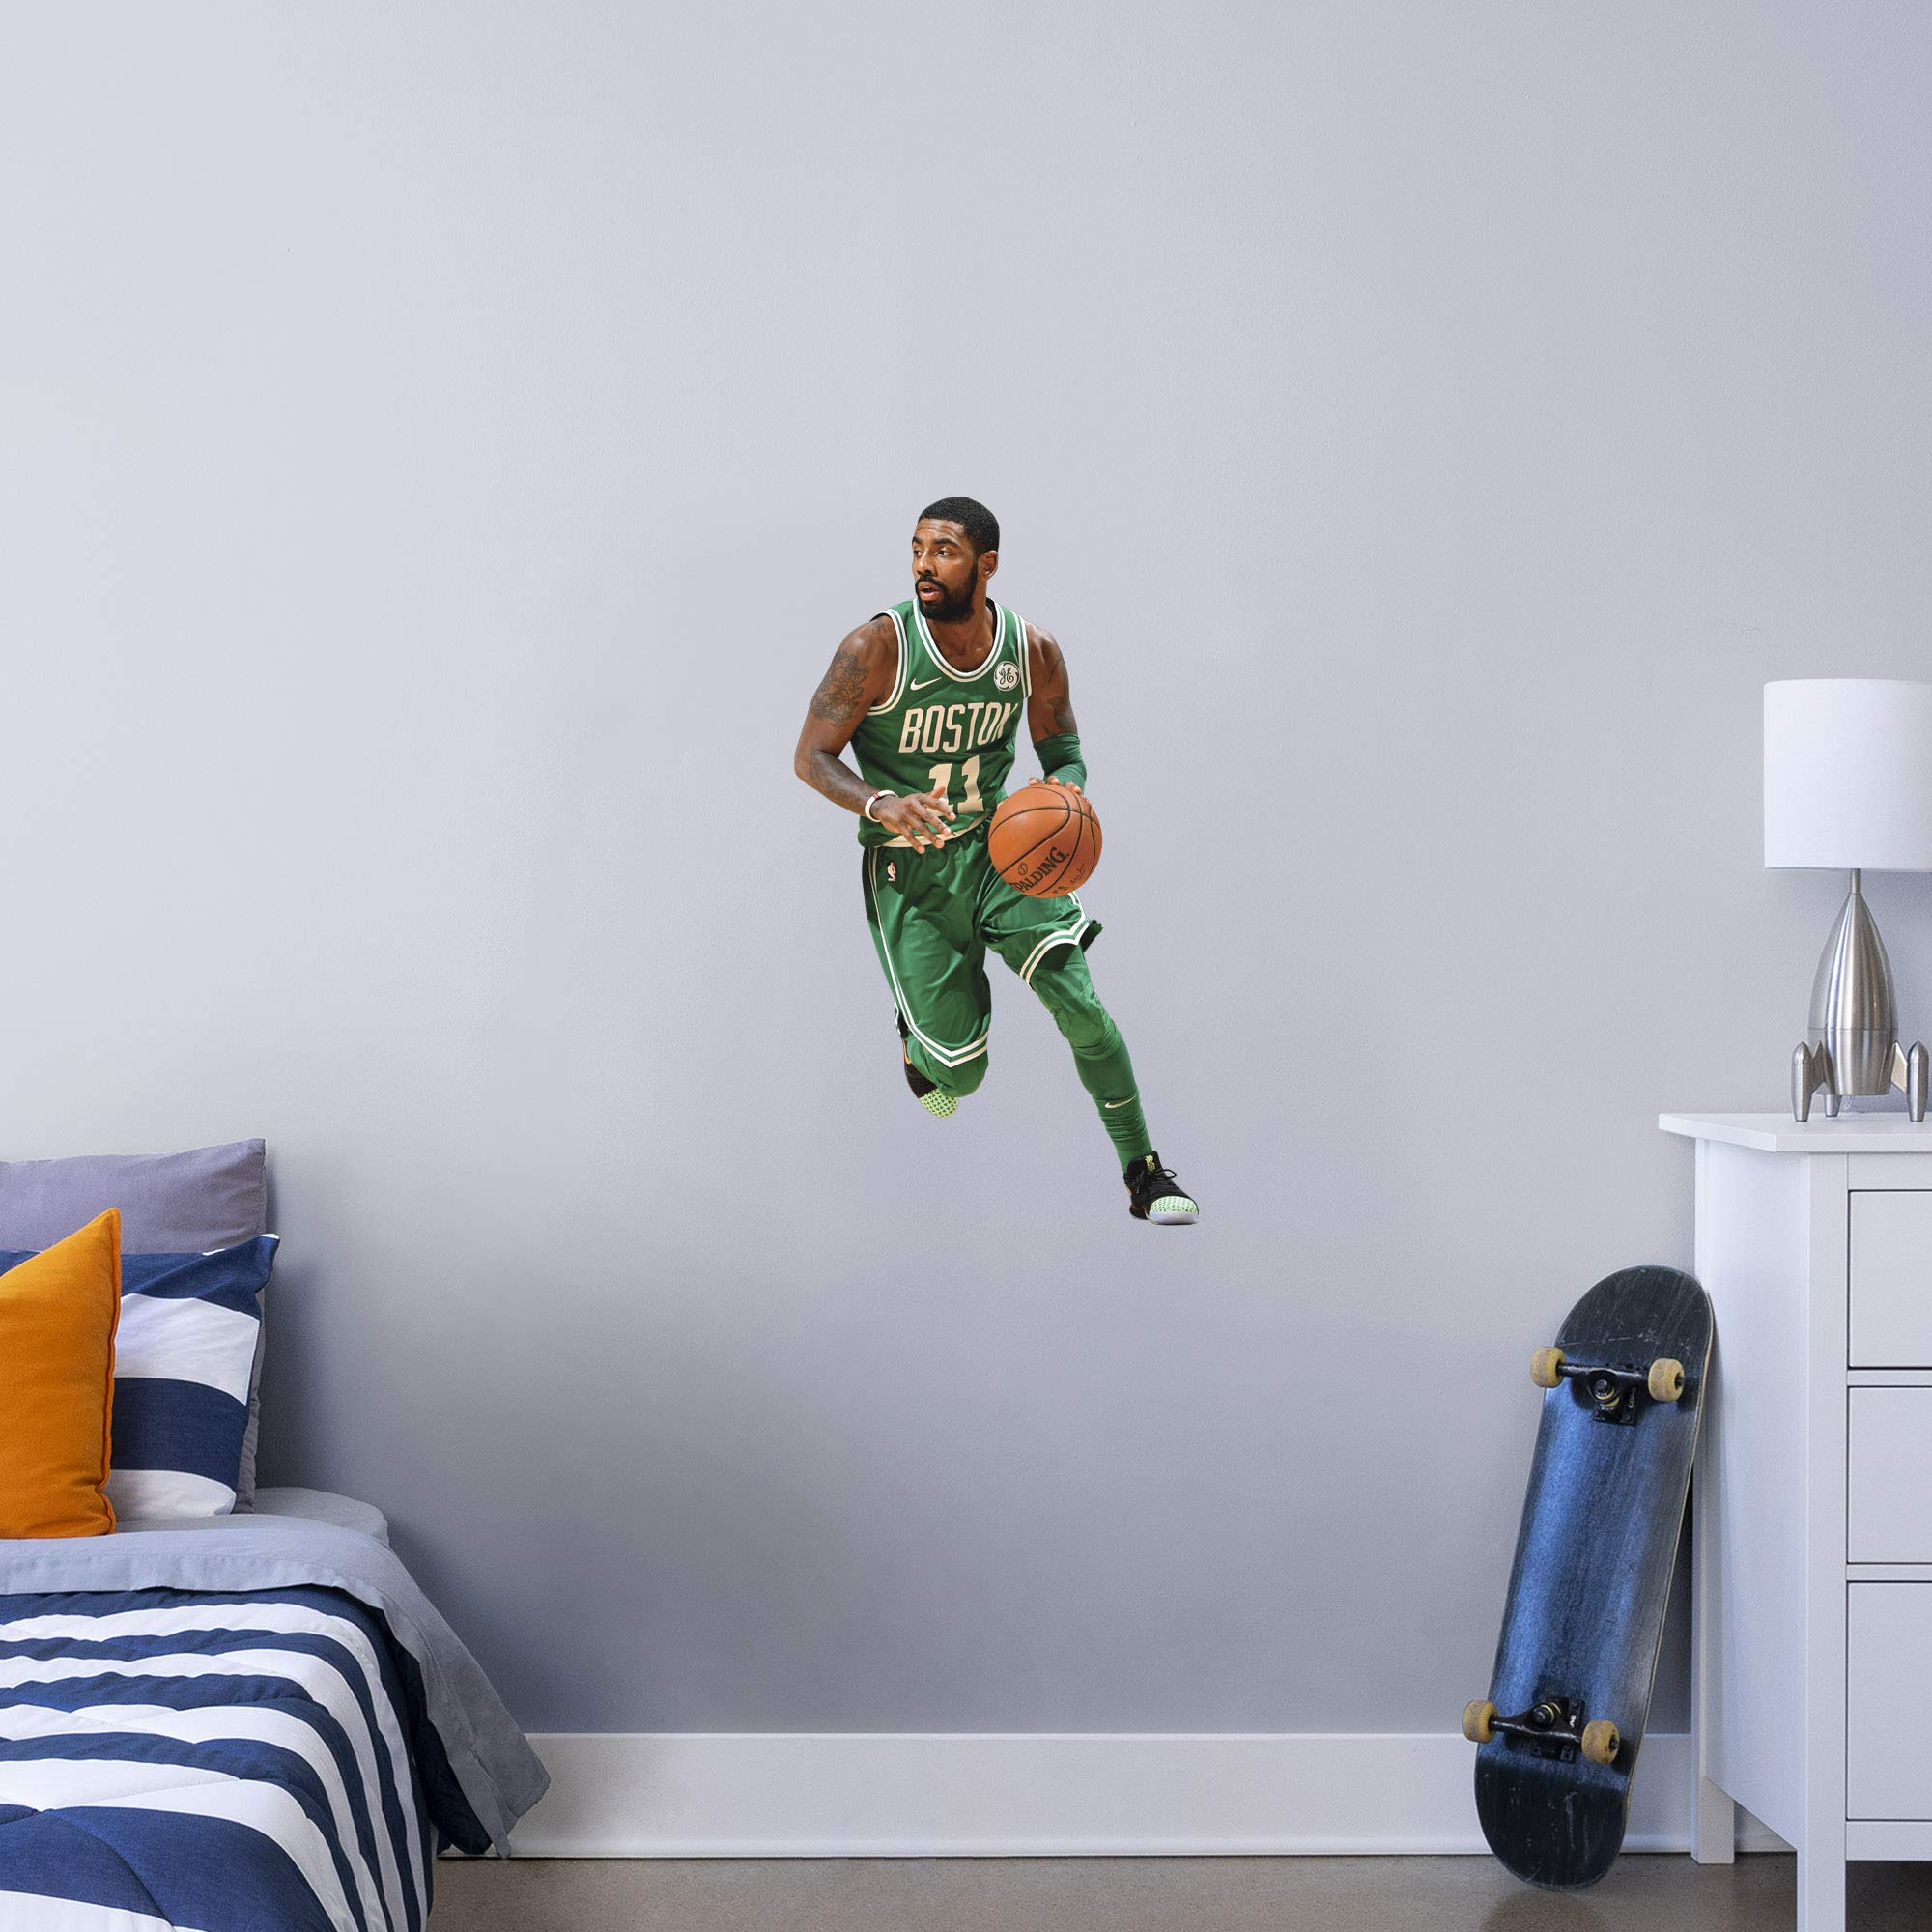 Fathead NBA Boston Celtics Kyrie Irving Kyrie Irving- Officially Licensed Removable Wall Decal, Multicolor, X-Large - 1900-00305-004 by FATHEAD